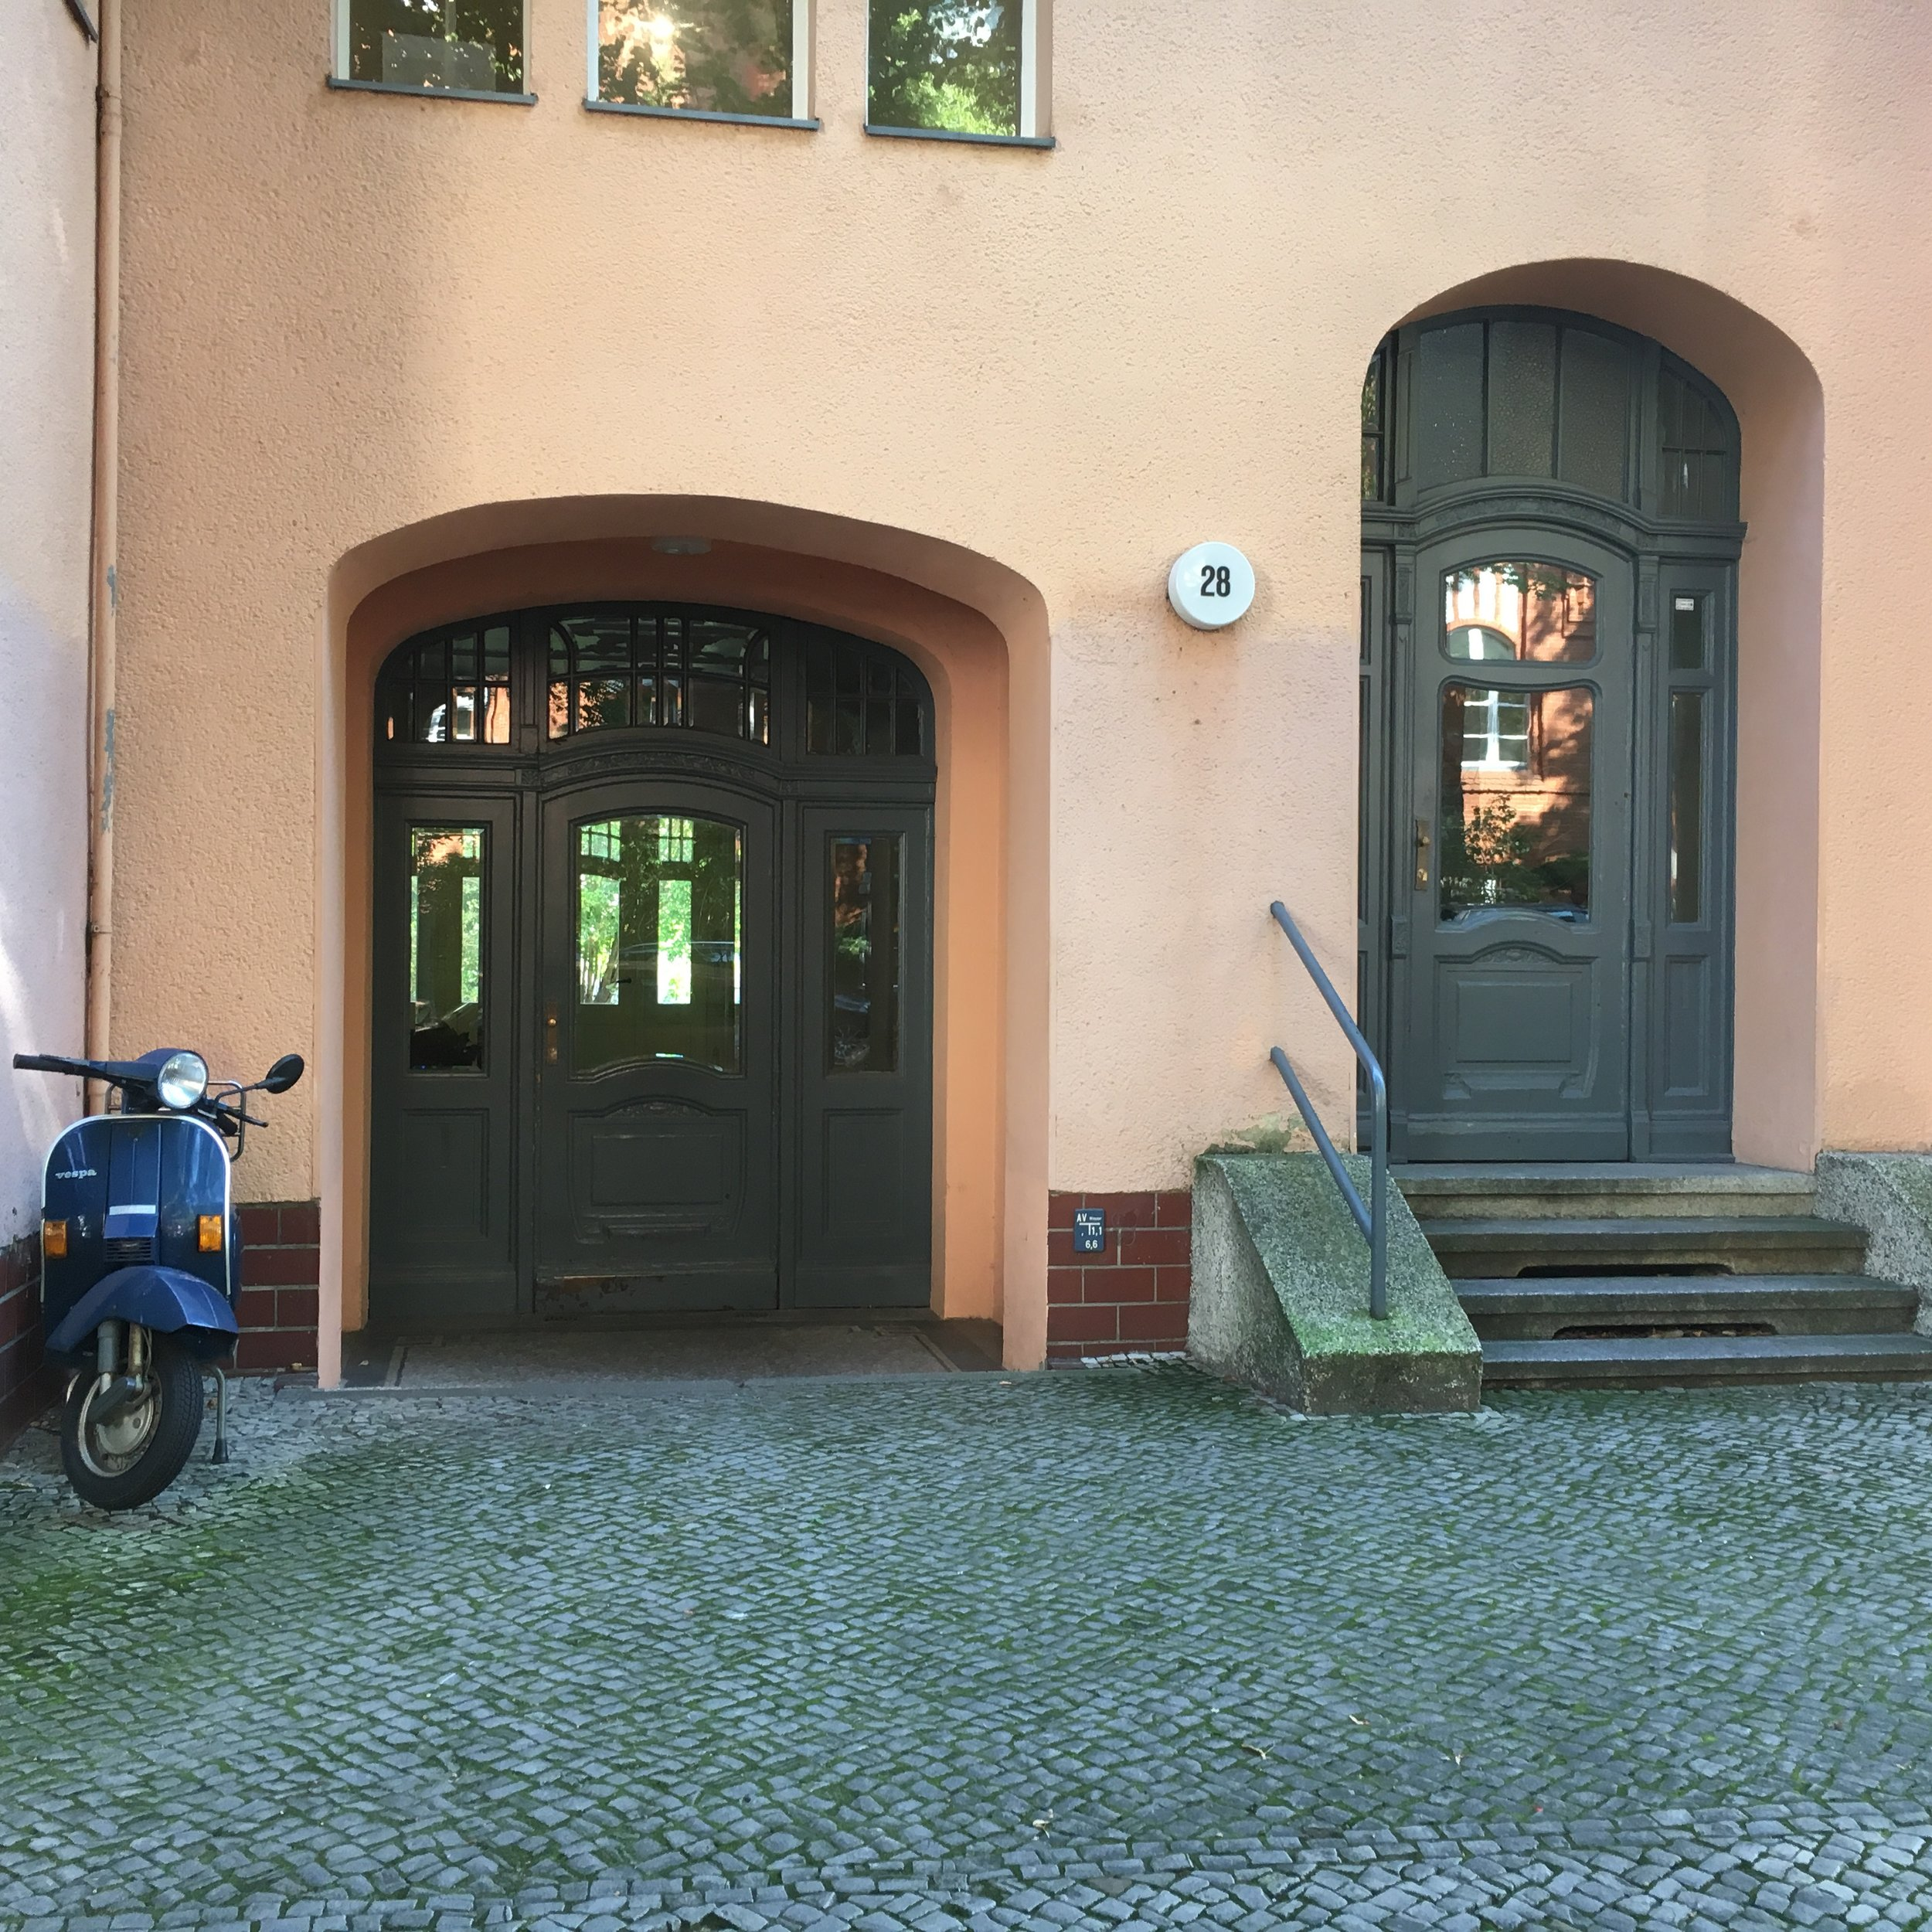 The view from the street of my Uropa's apartment. We always entered through the left door into the inner courtyard.